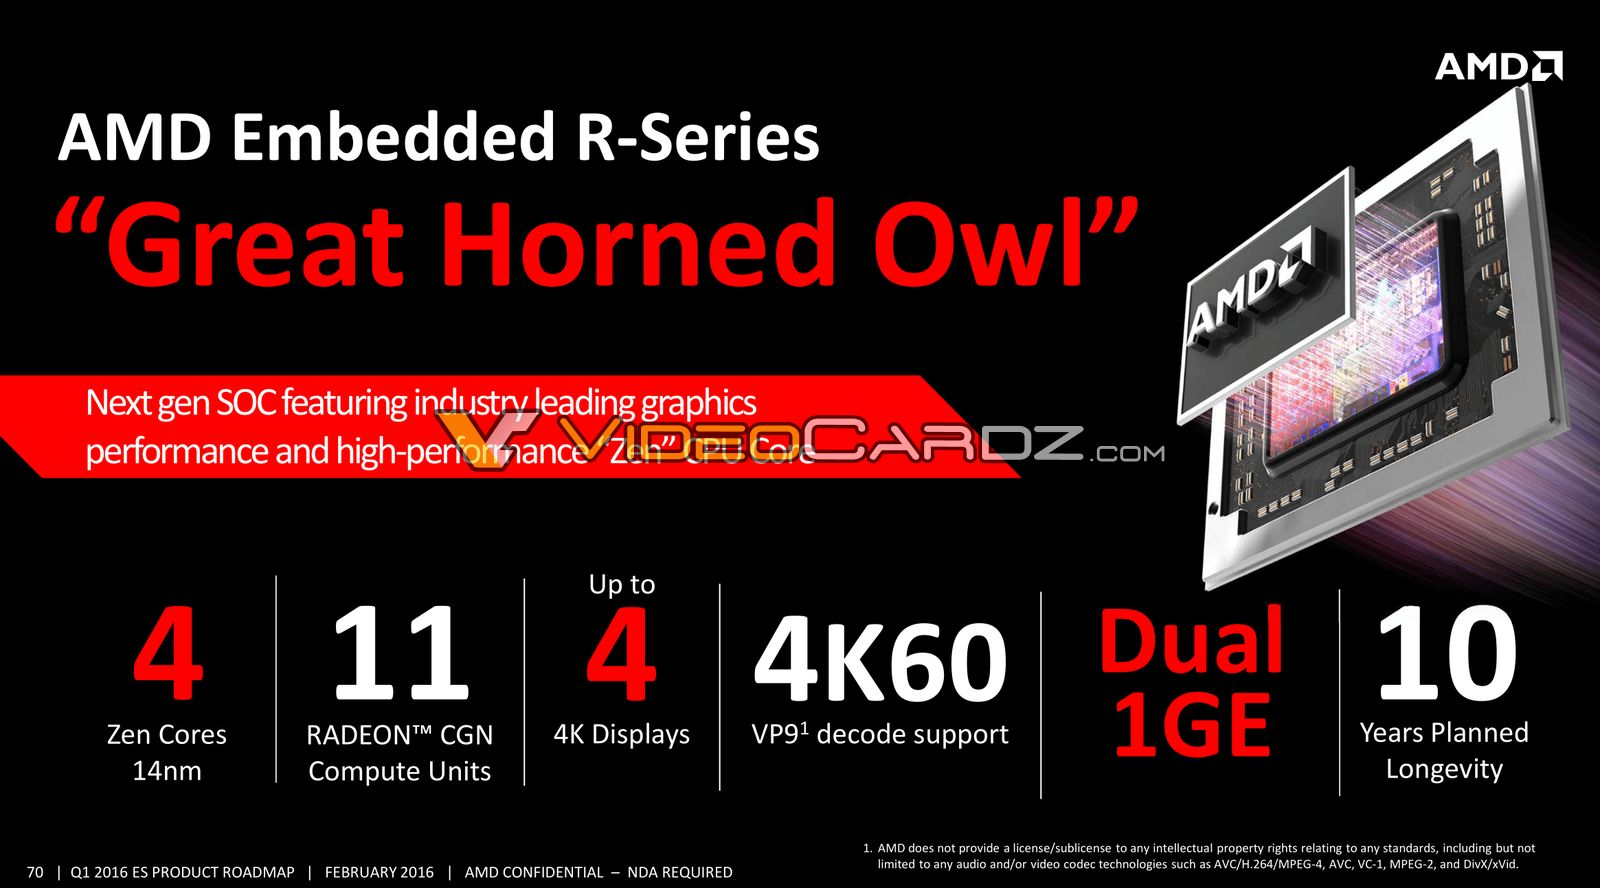 https://cdn.videocardz.com/1/2017/05/AMD-Data-Center-Presentation-7_VC.jpg